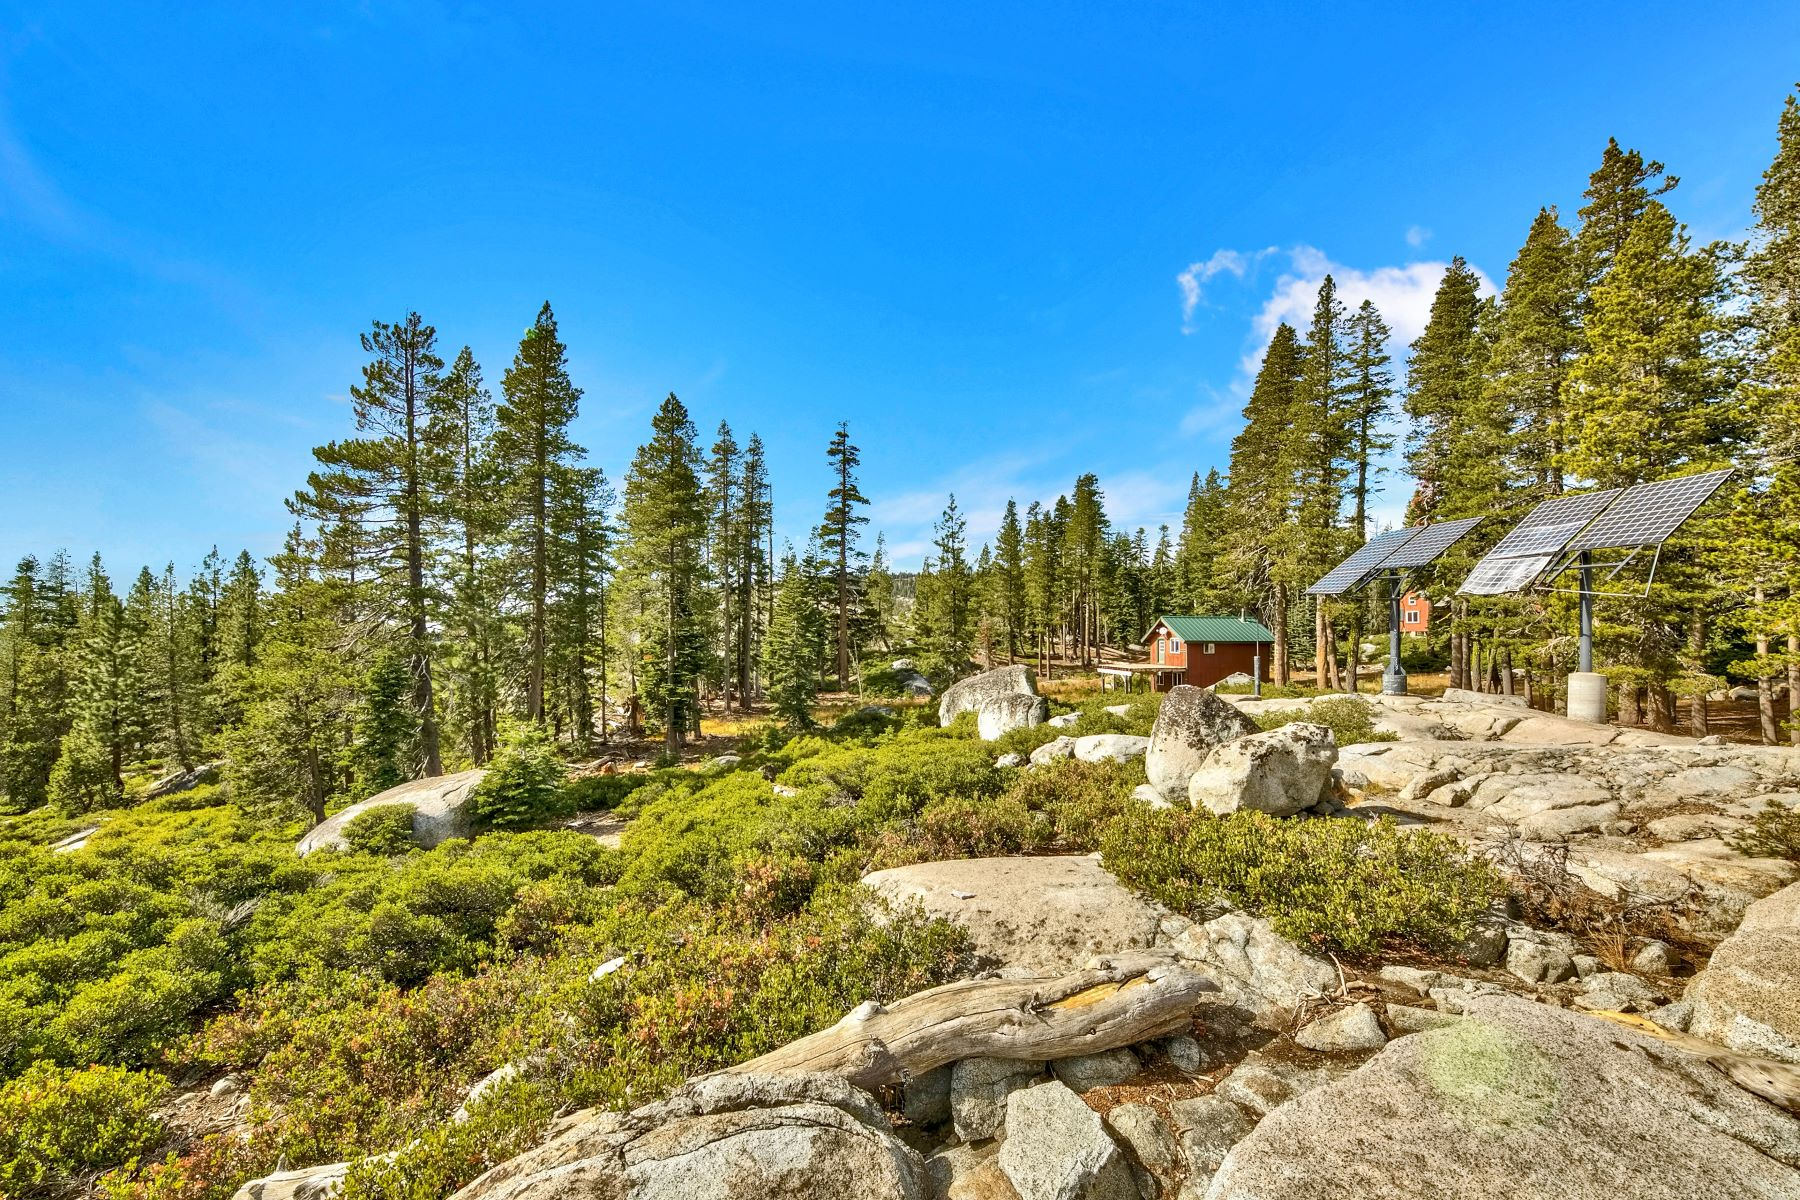 Additional photo for property listing at 11902 Lola Montz Road, Soda Springs, CA 95728 11902 Lola Montez Road 特拉基, 加利福尼亚州 96161 美国